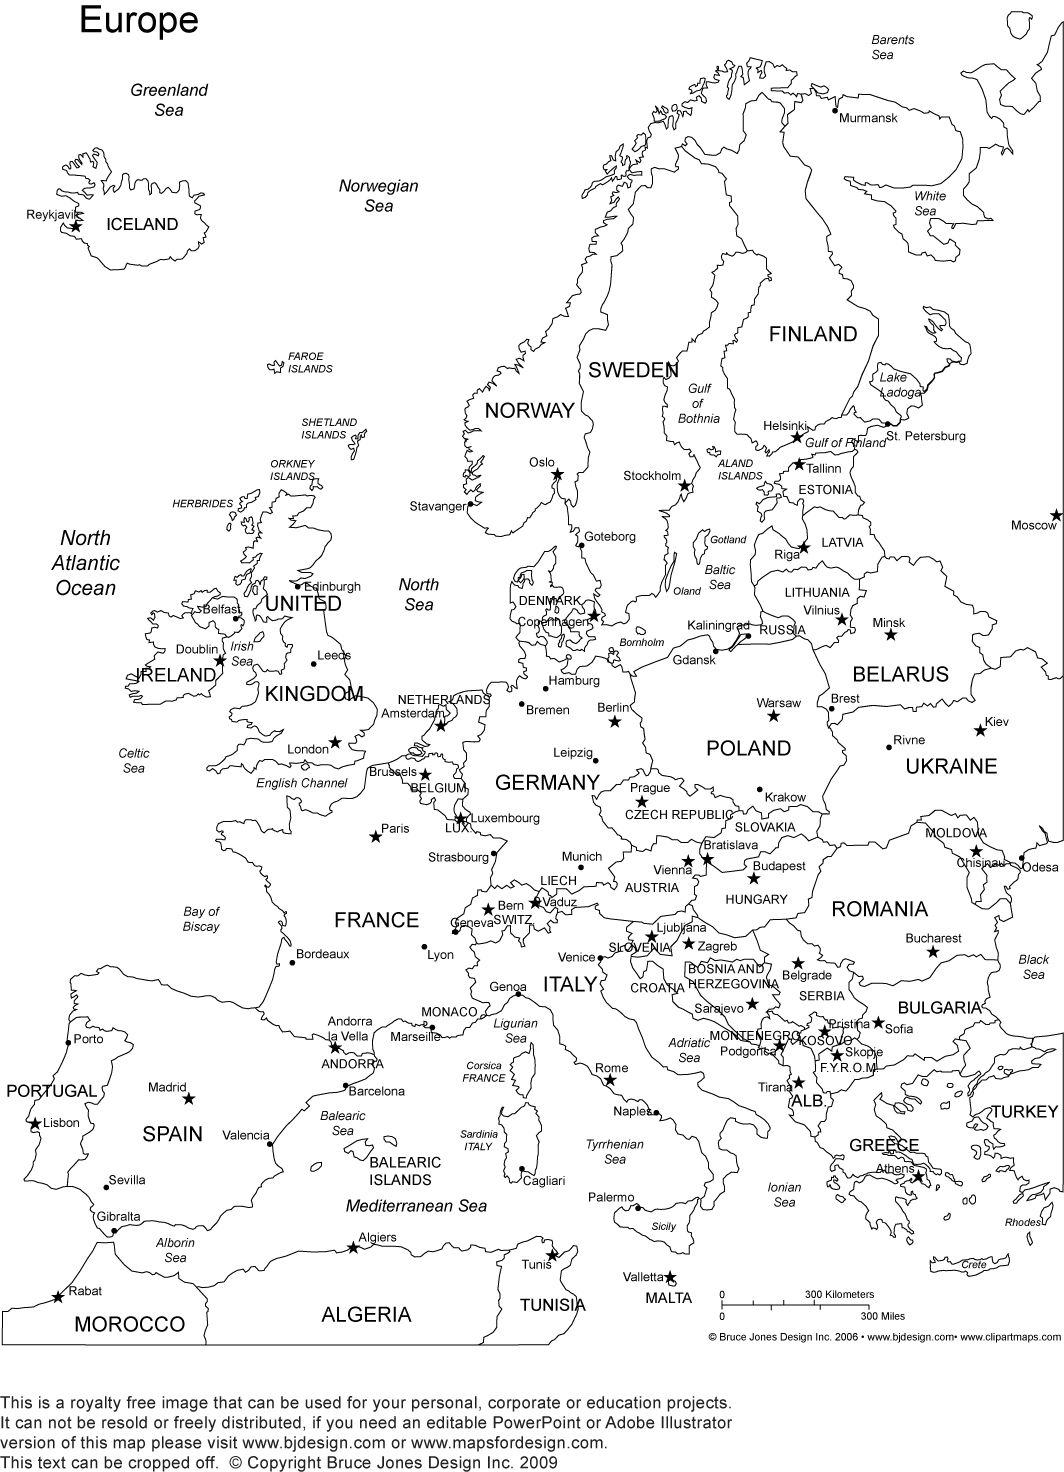 Europe Printable Blank Map Royalty Free Jpg As Well As Other - Map of the united states with regions printable